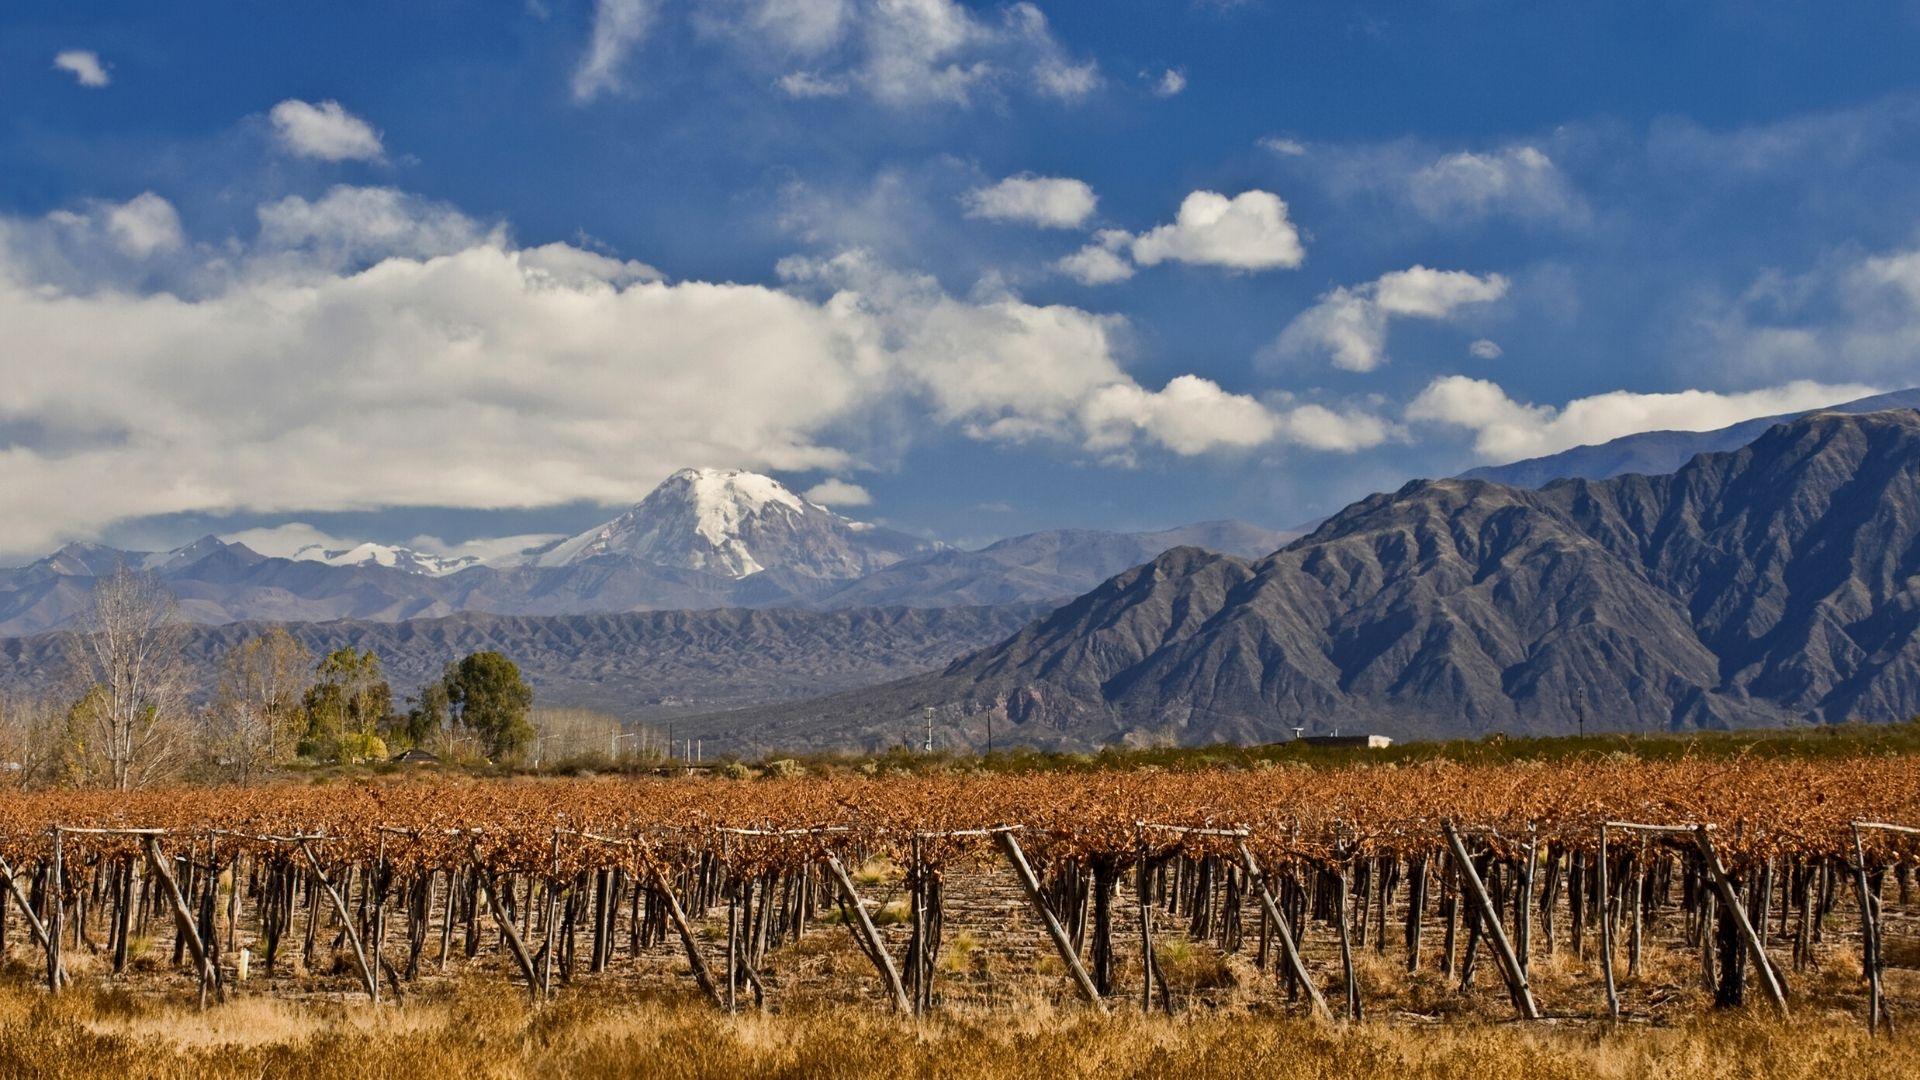 Argentina & Chile: Crossing the Andes